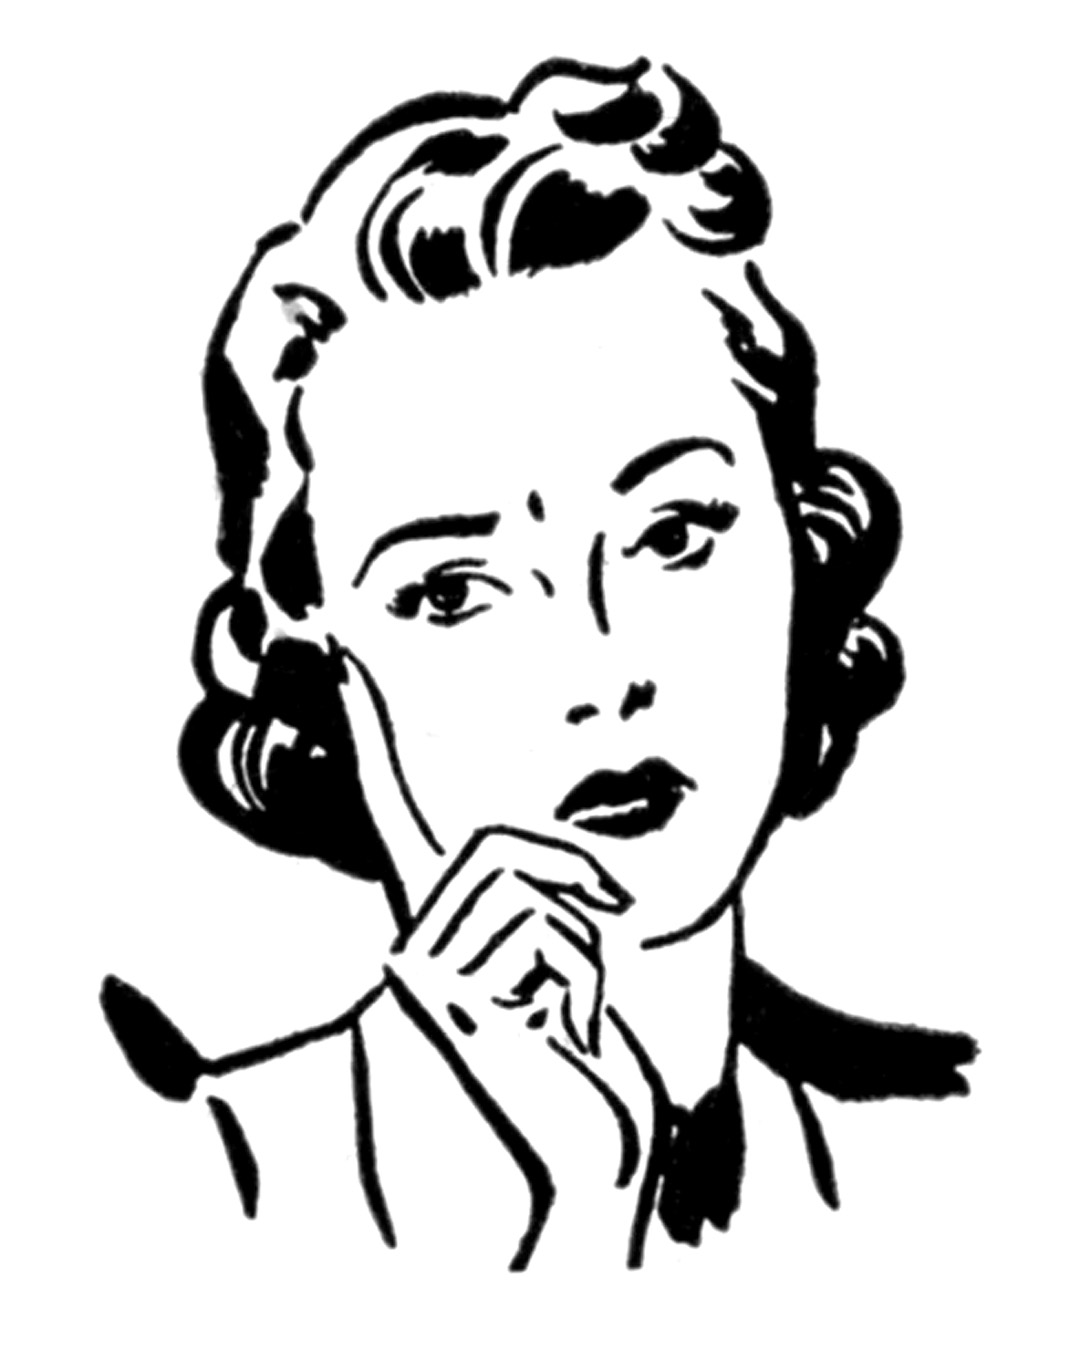 retro clip art - money moms - women